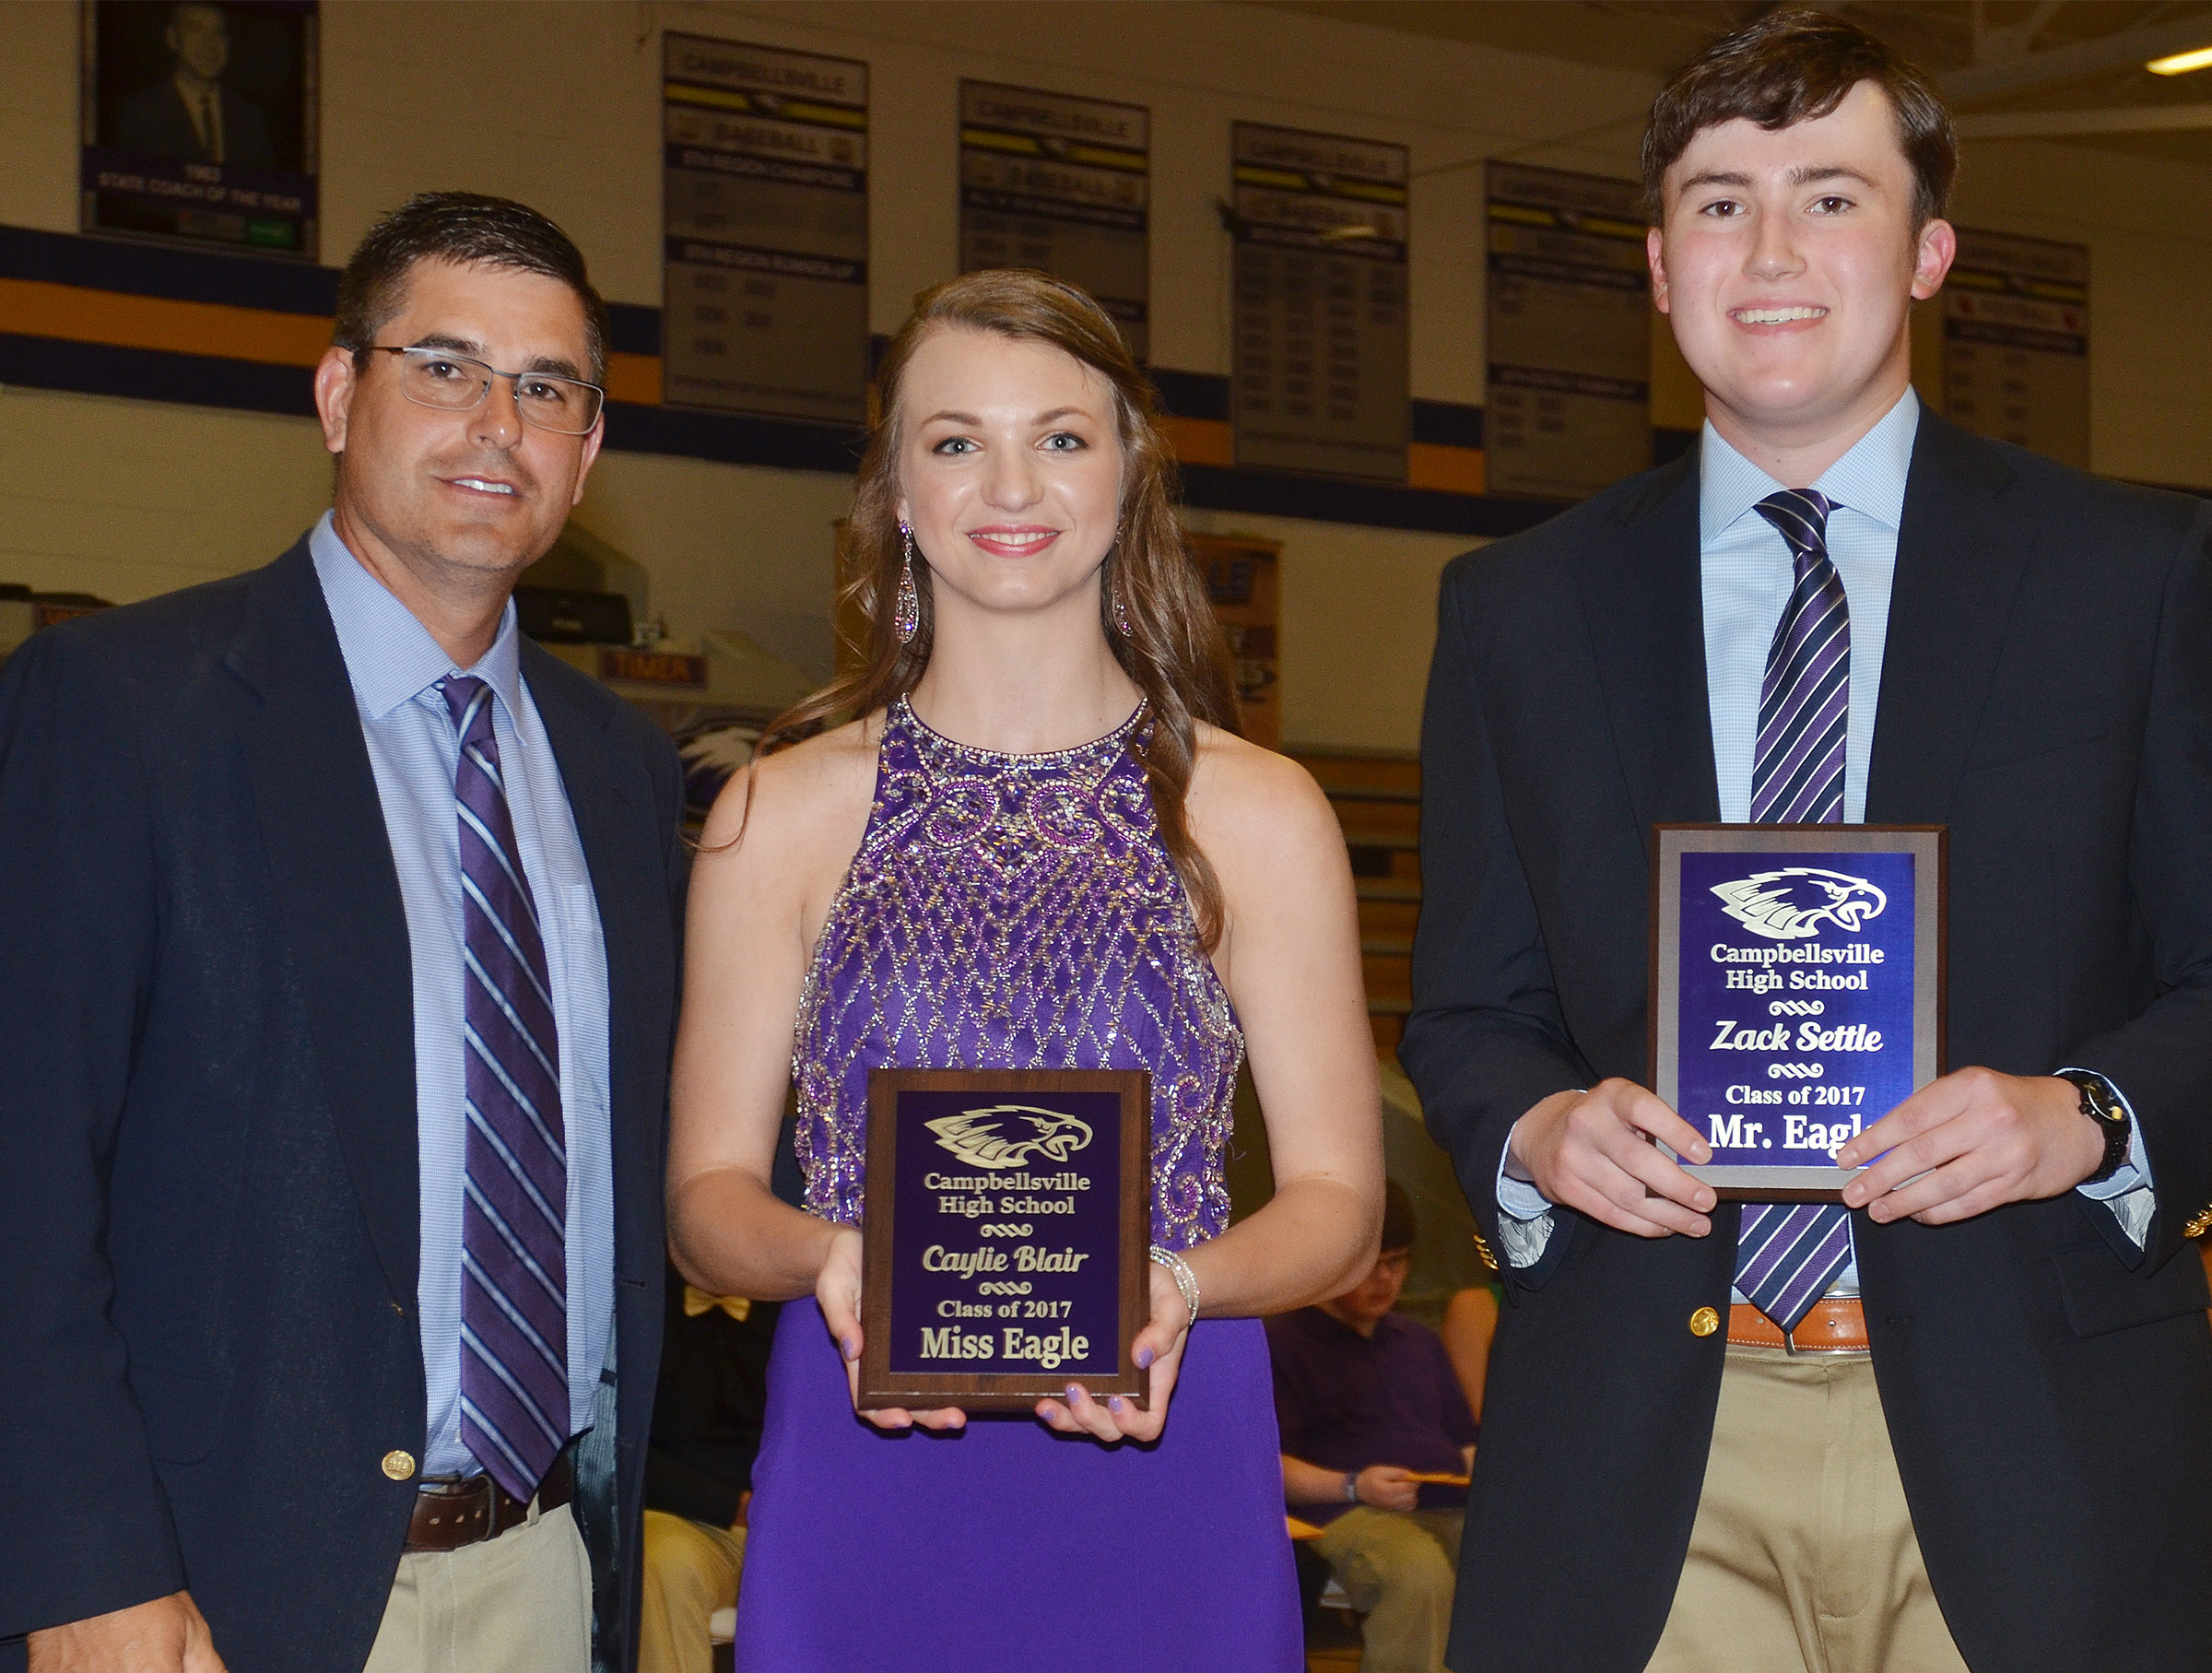 Caylie Blair receives the Miss Eagle award and Zack Settle receives the Mr. Eagle award. They are pictured with Principal Kirby Smith.